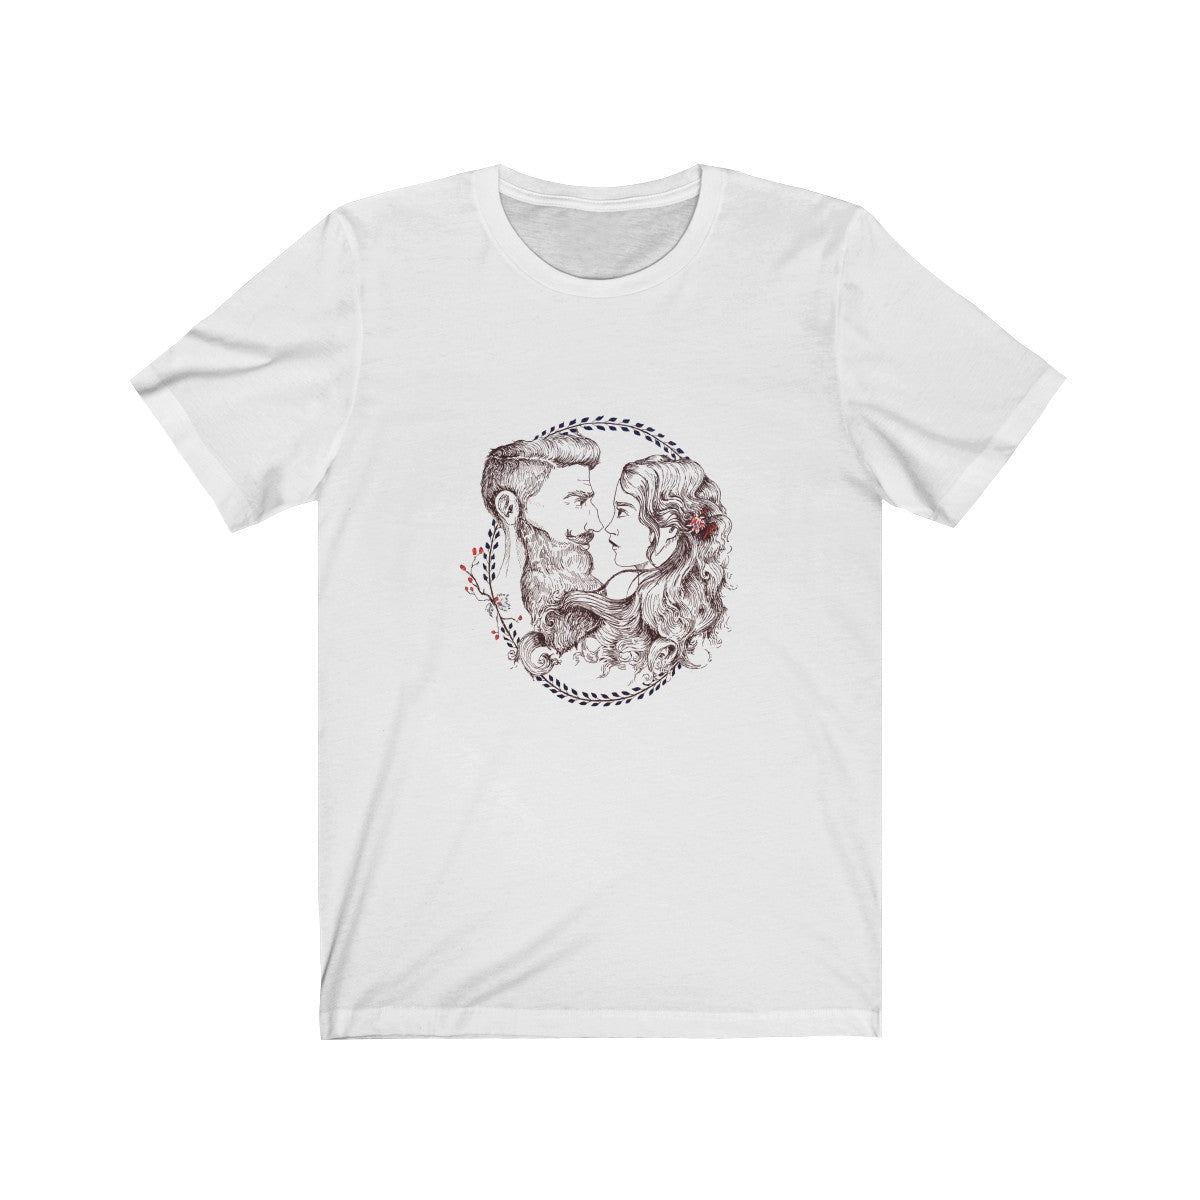 Unisex Jersey Short Sleeve Tee - Beard and Lady